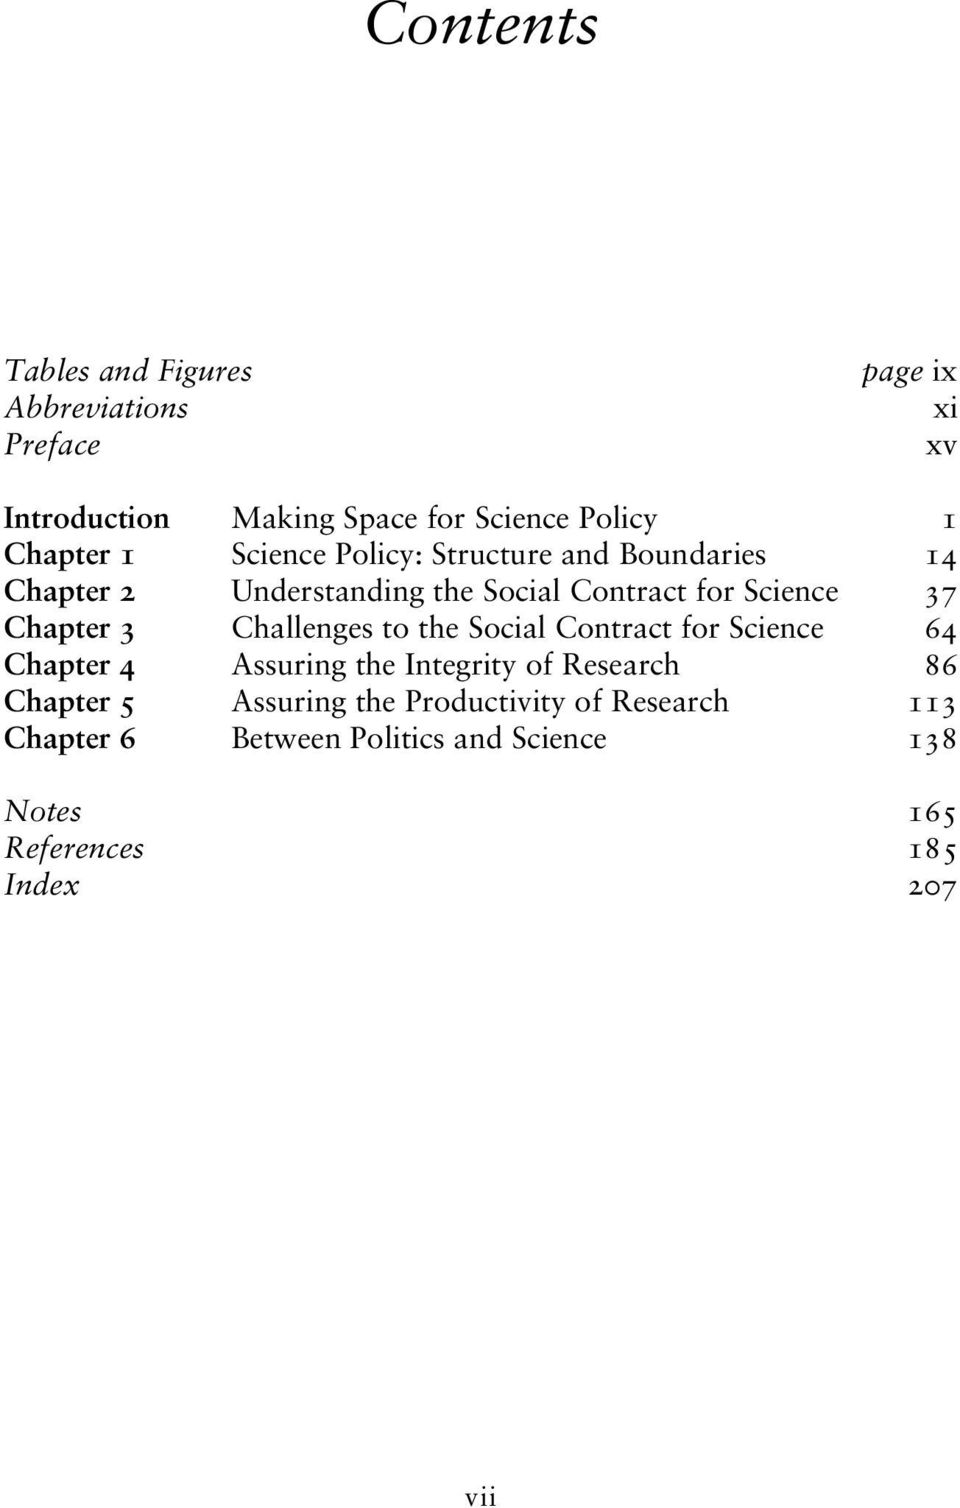 Chapter 3 Challenges to the Social Contract for Science 64 Chapter 4 Assuring the Integrity of Research 86 Chapter